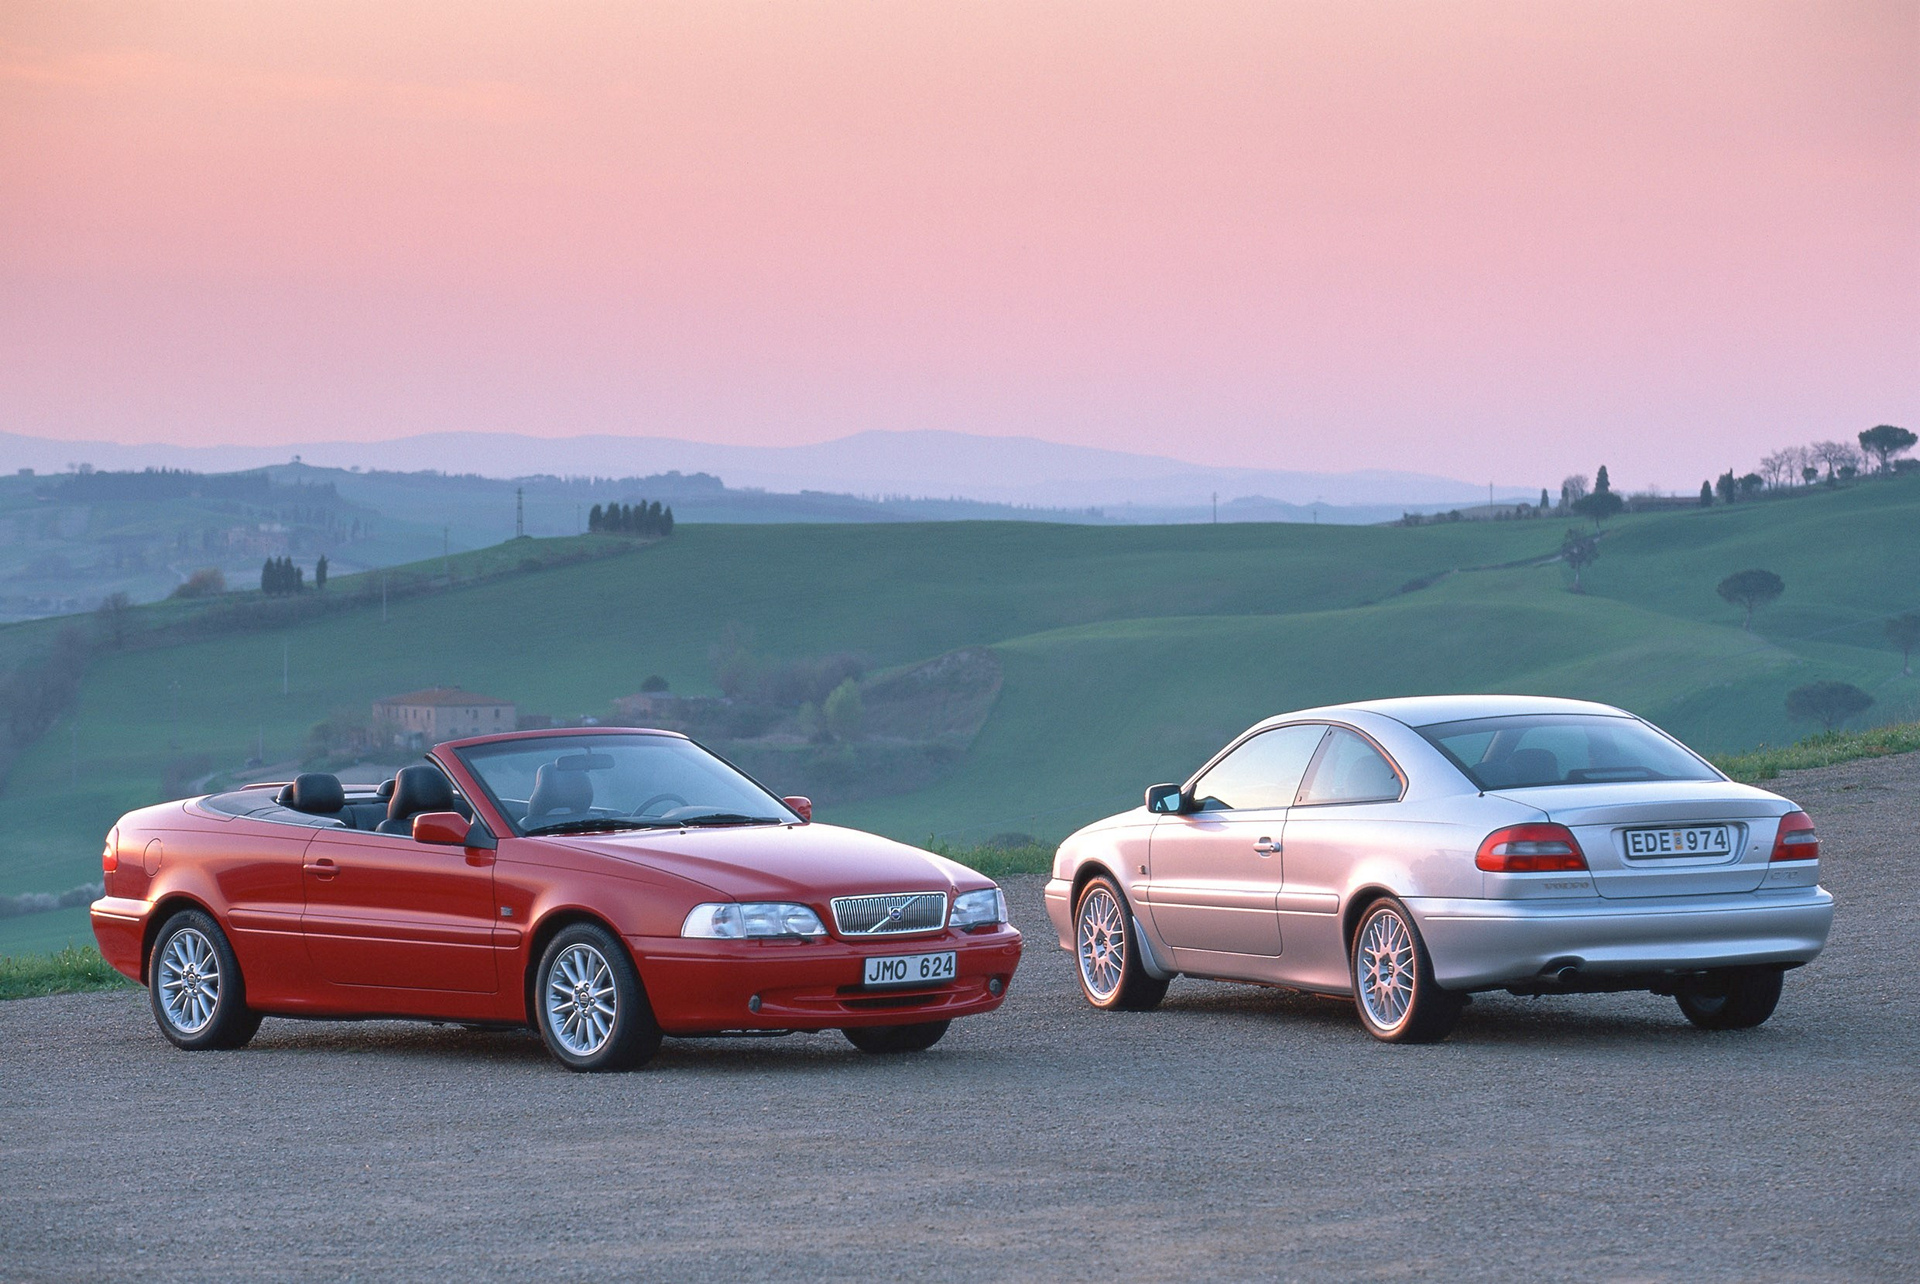 Volvo C70 Convertible and C70 Coupe © Zhejiang Geely Holding Group Co., Ltd